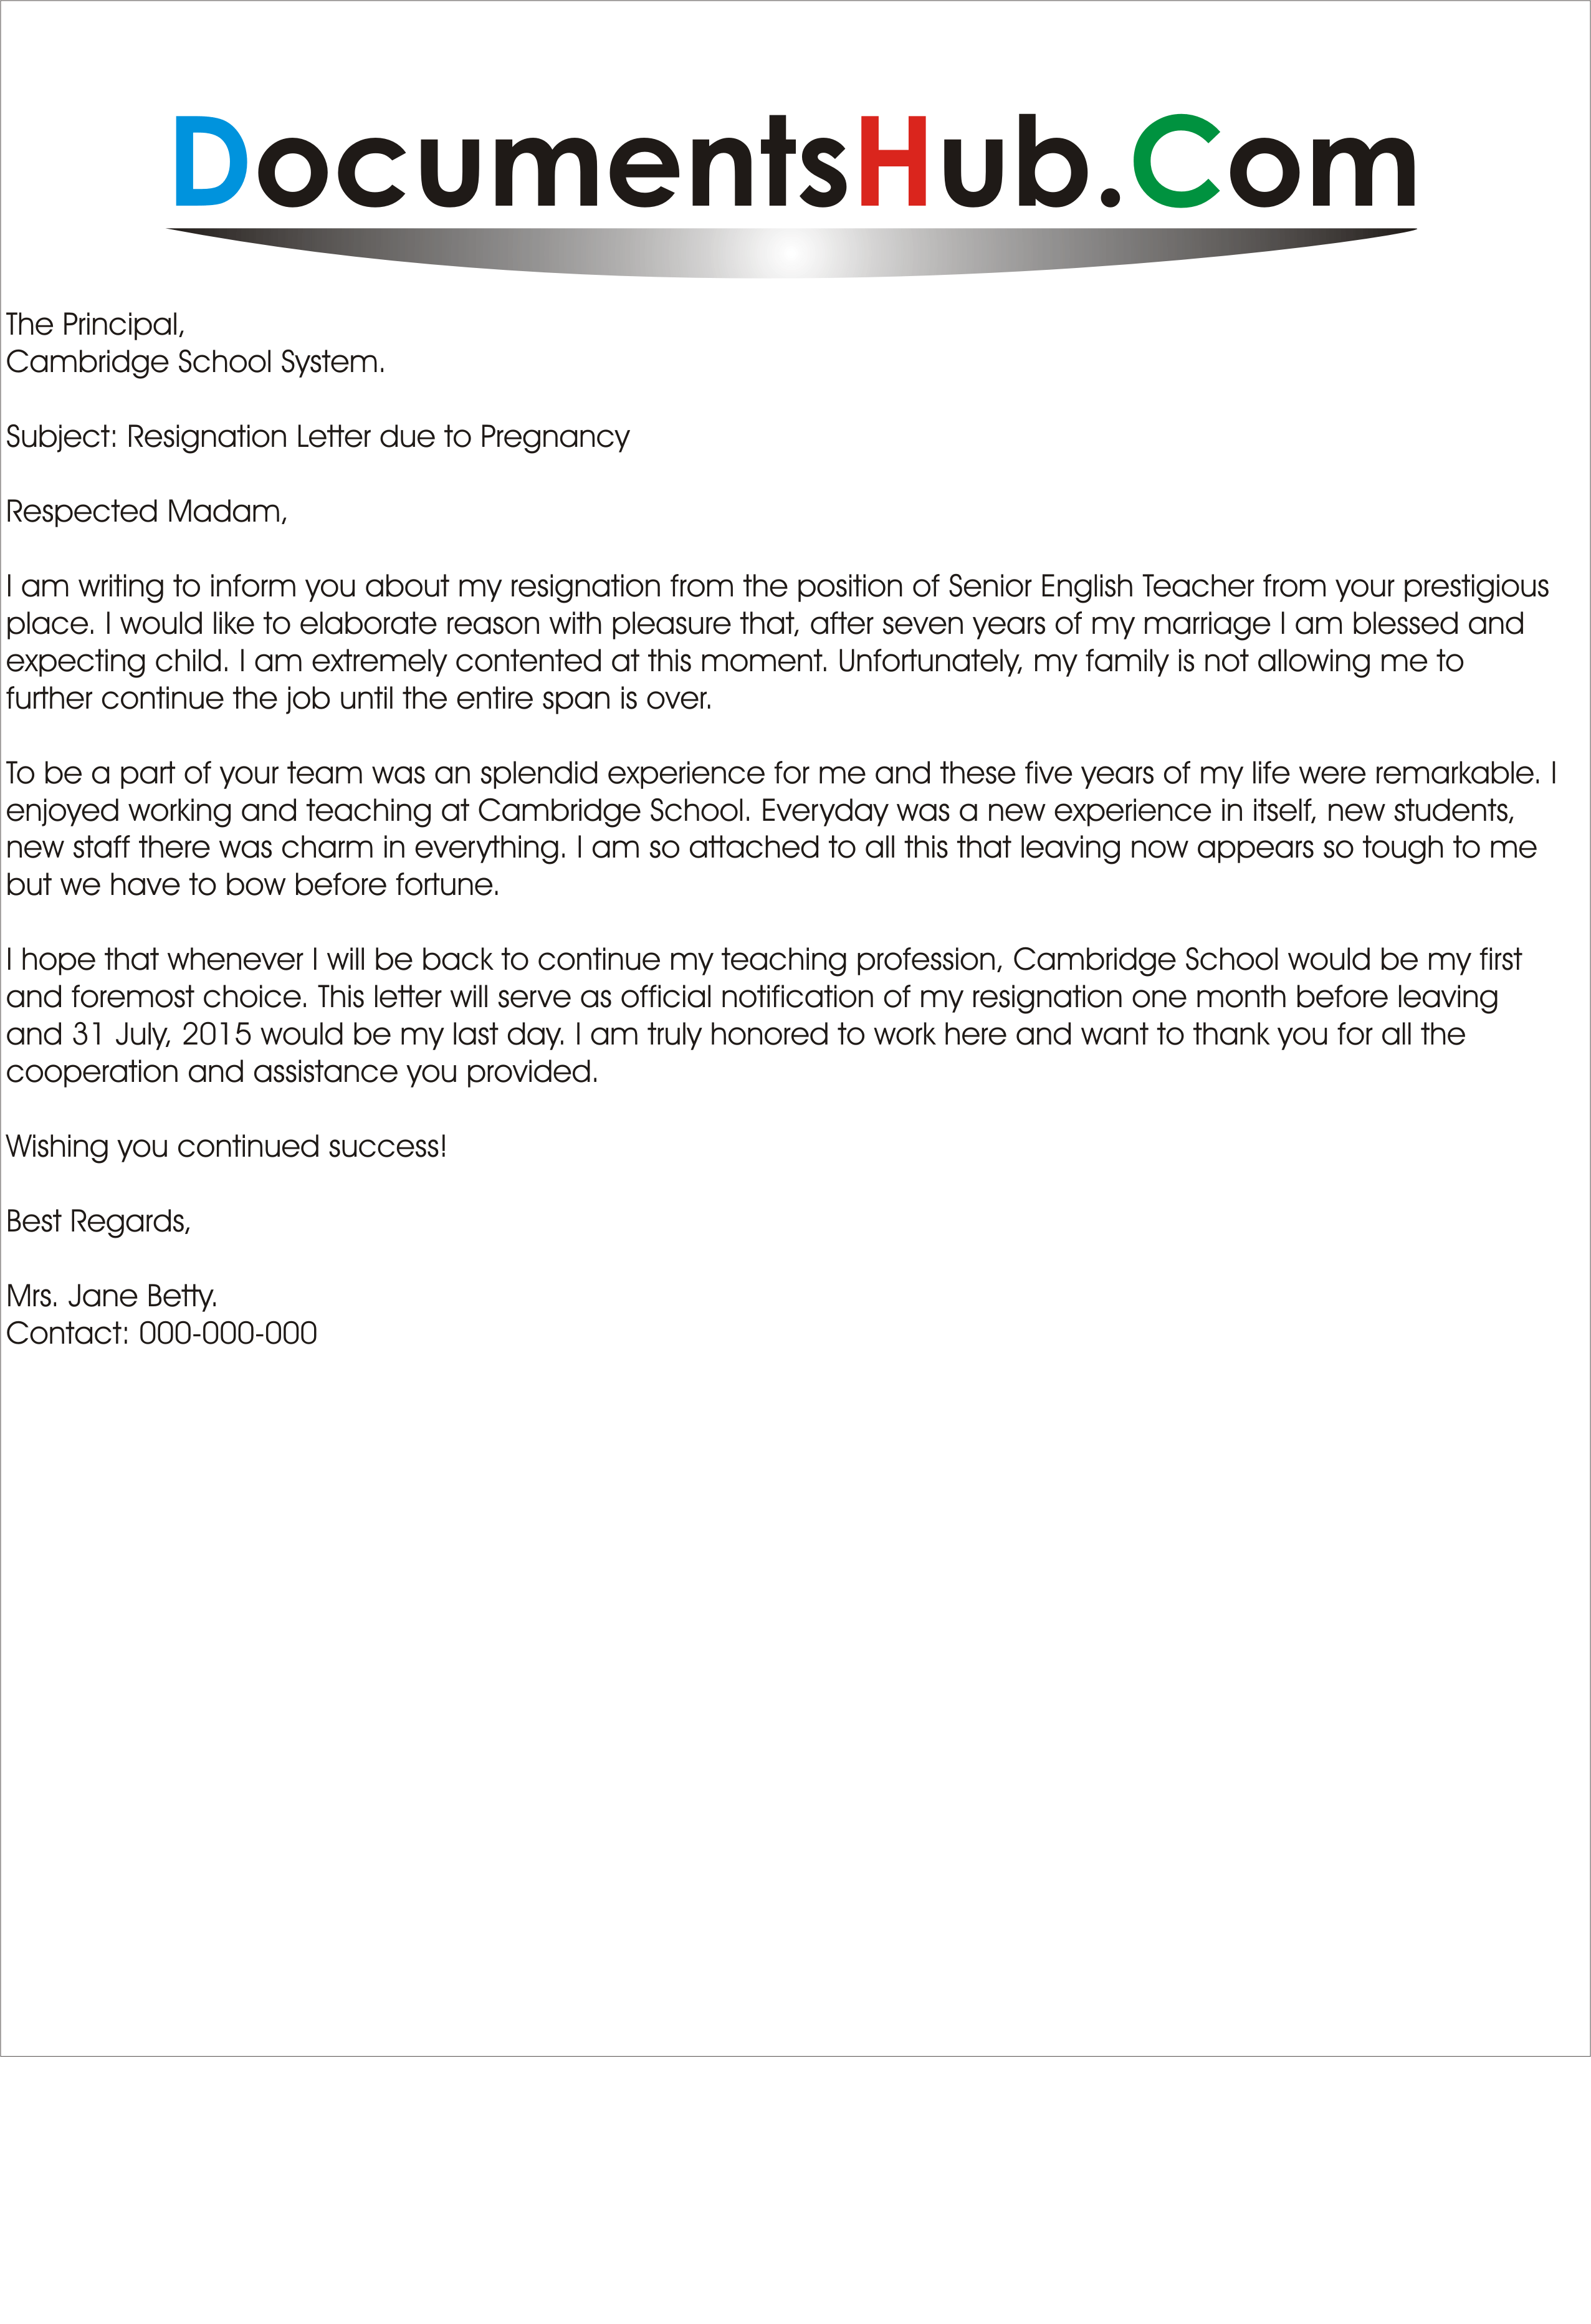 Resignation Letter Due To Pregnancy